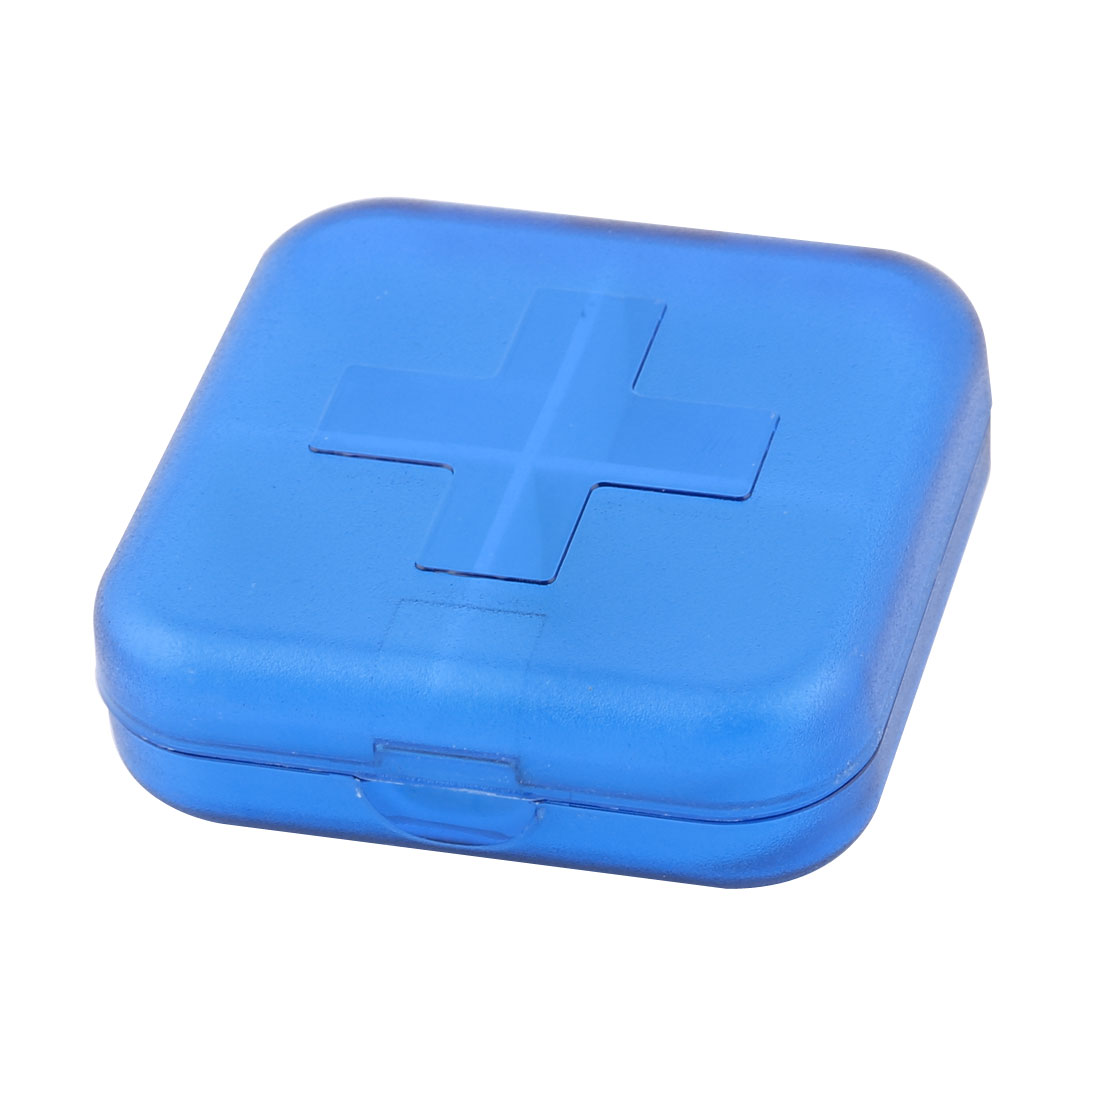 Plastic Rectangle 4 Slots Medicine Pill Capsule Storage Box Clear Blue